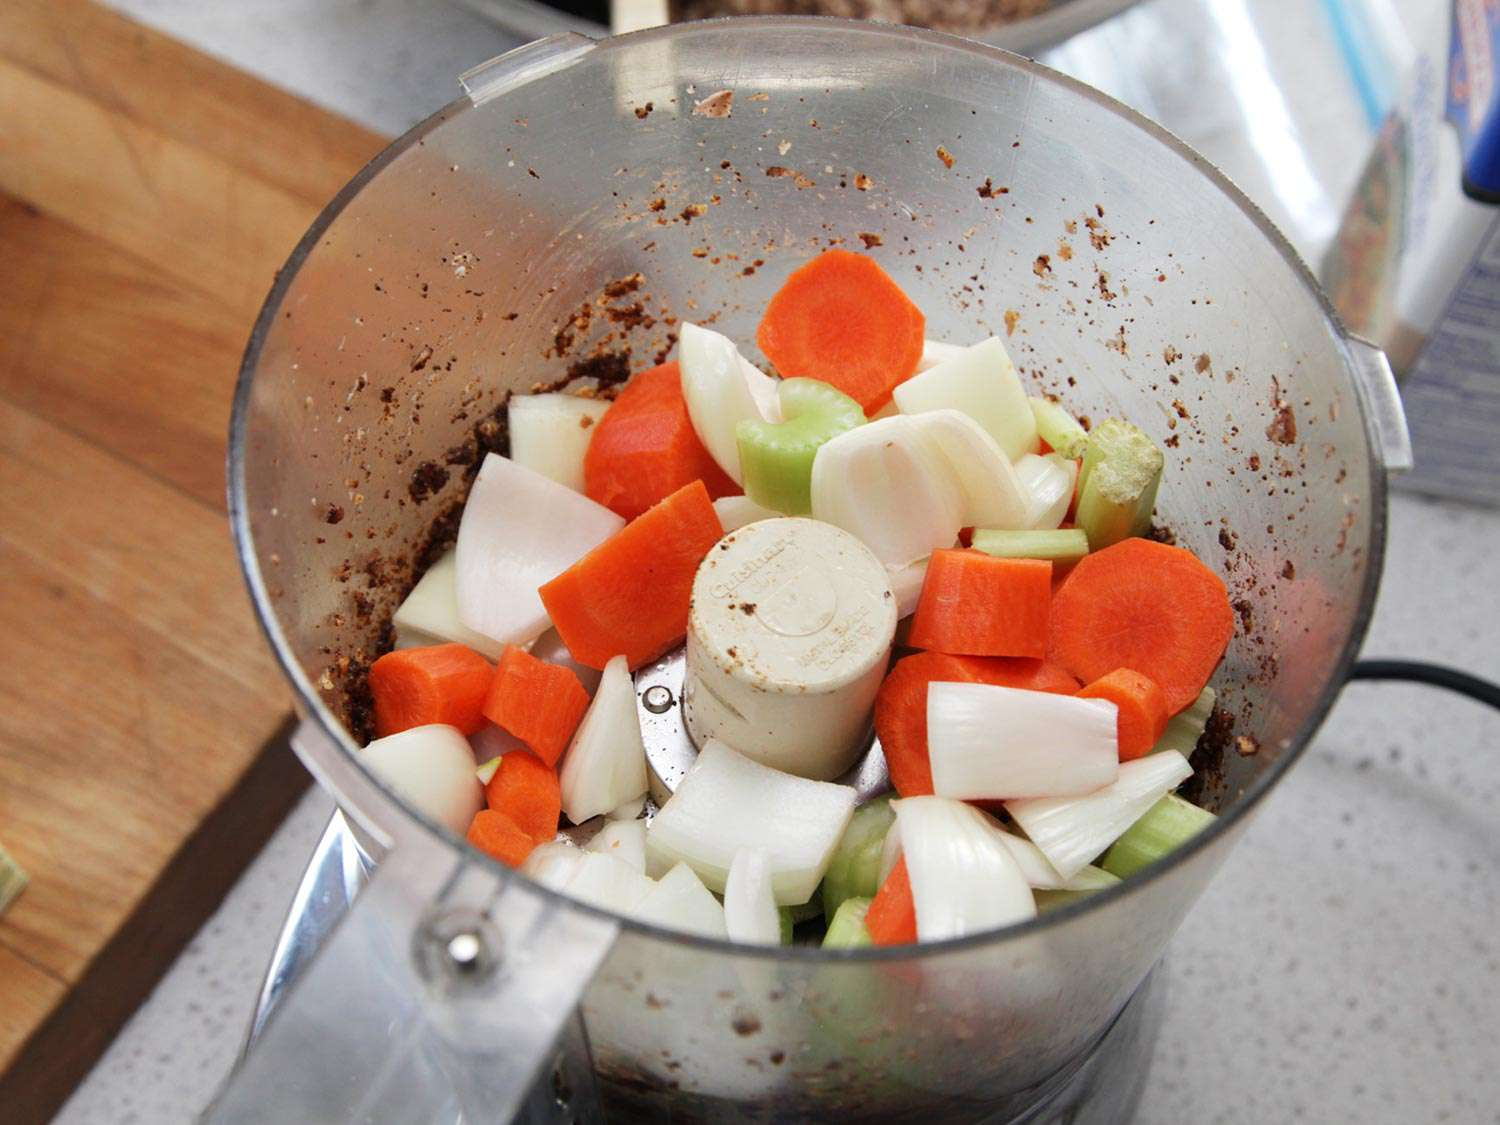 Onion, celery, and carrots in food processor bowl